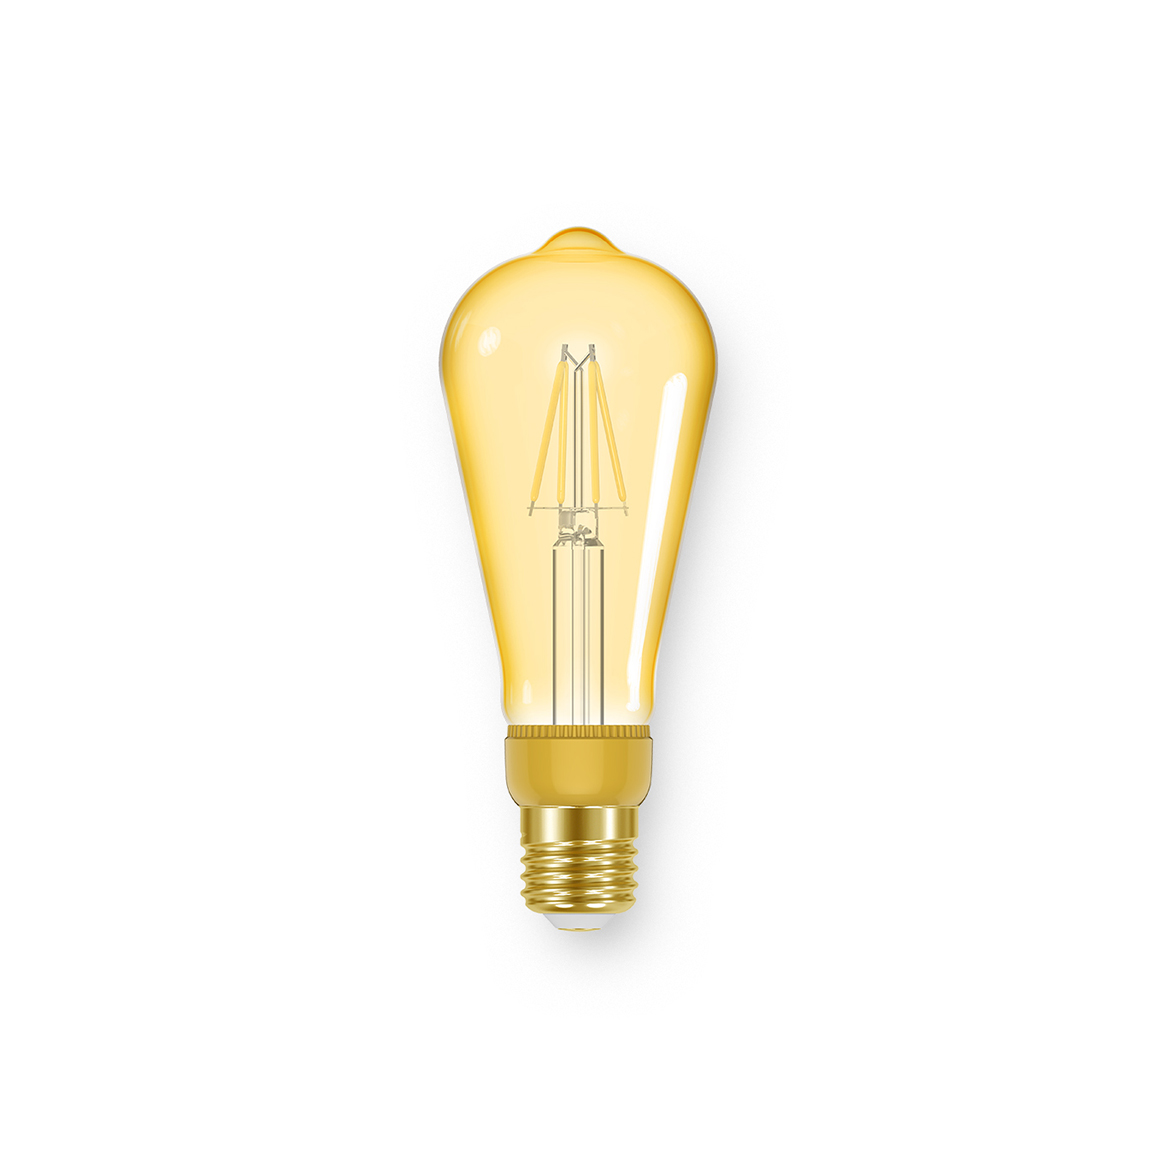 Filament ST64 Spiral Vintage 350lm Dimmable E27